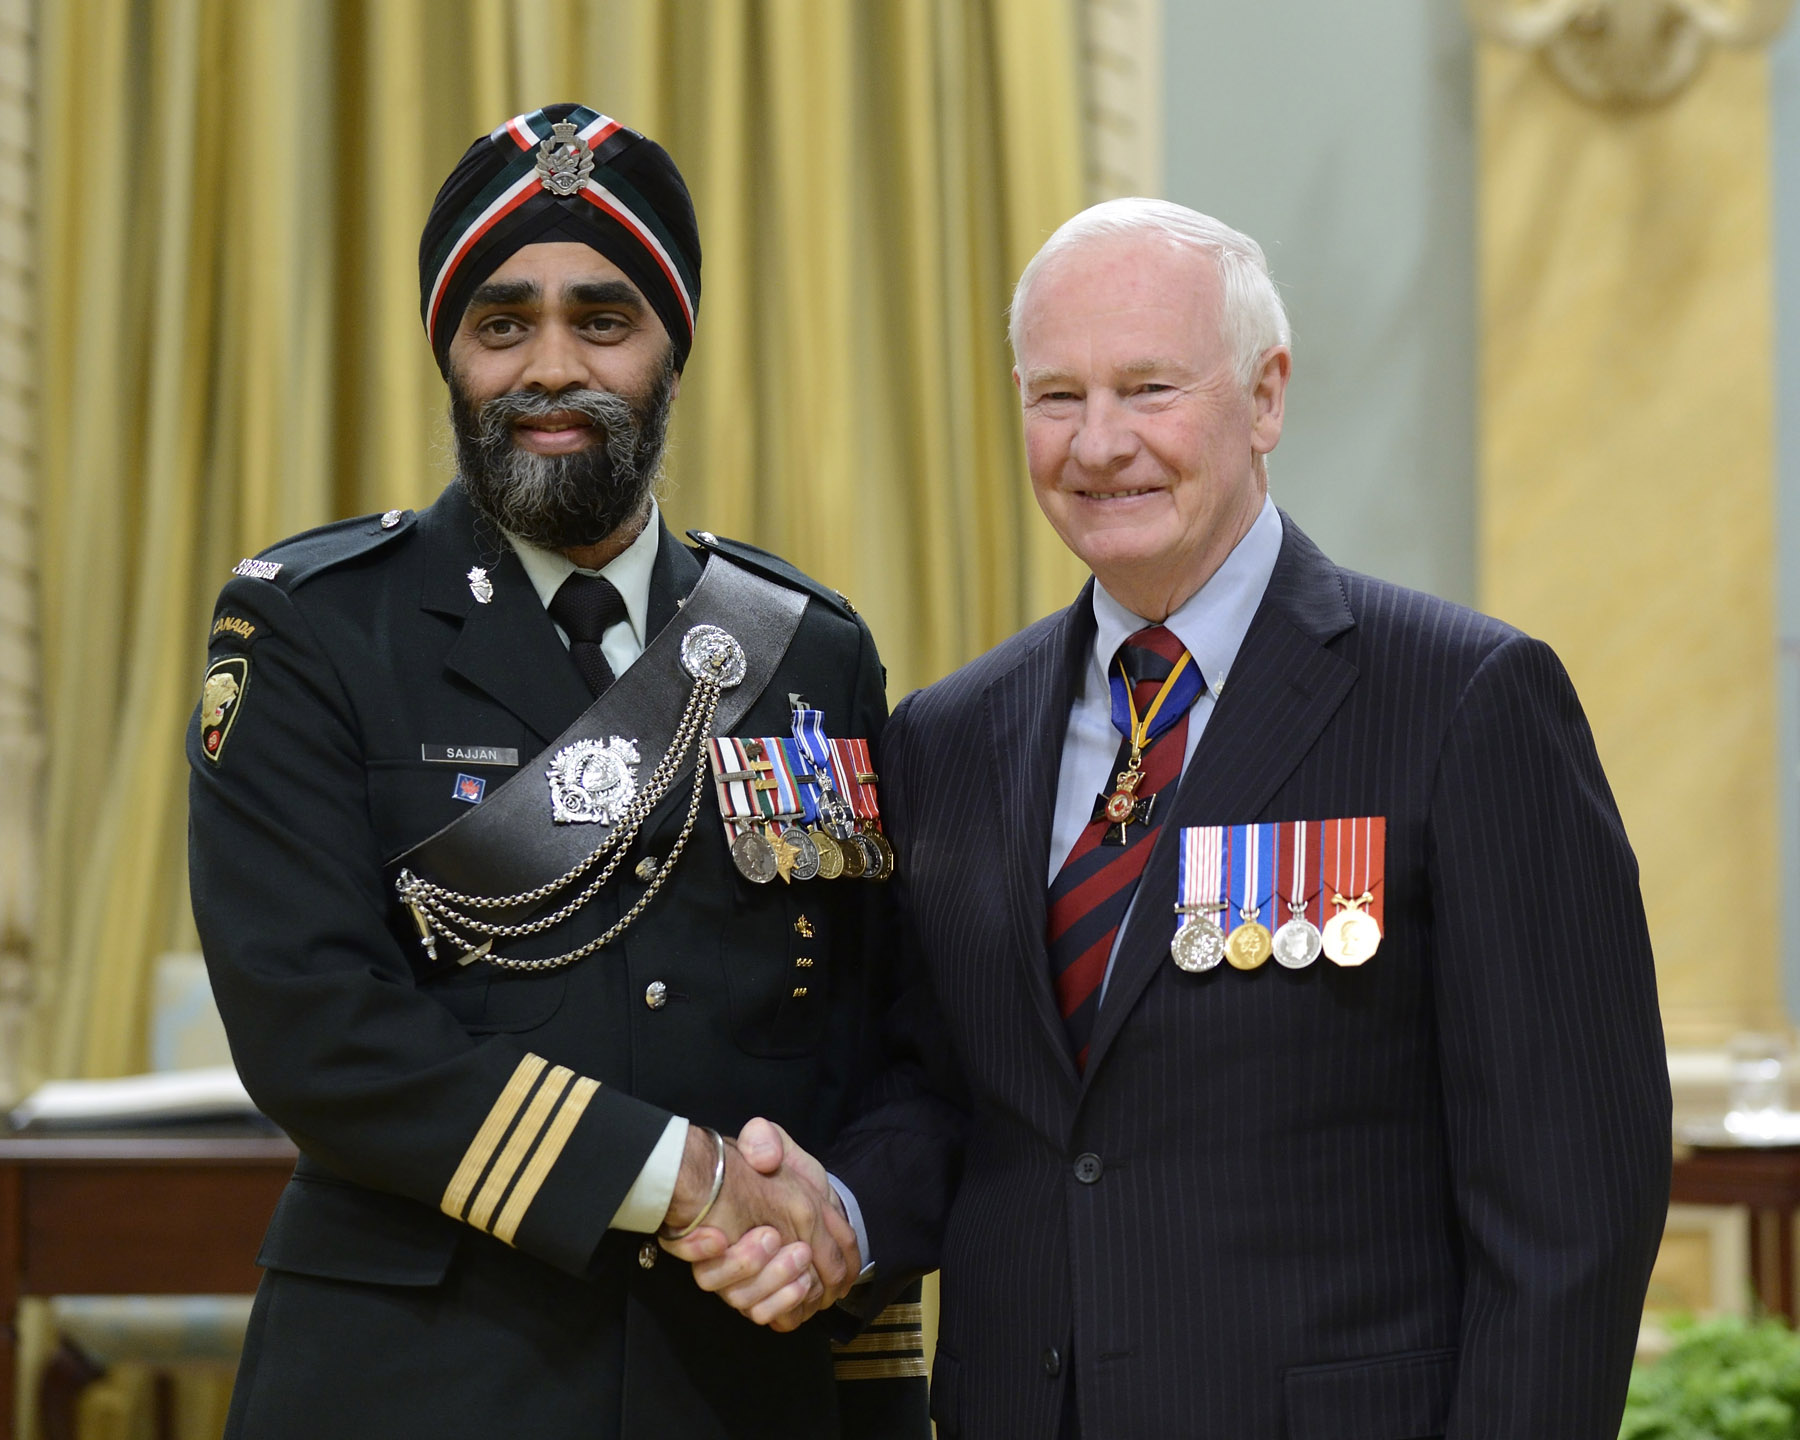 Major Harjit Sajjan, M.S.M., C.D. (Vancouver, British Columbia) received the Meritorious Service Medal (Military Division). Major Sajjan deployed to Afghanistan as a special advisor from February to November 2009, and from November 2010 to March 2011. His approach, based on his knowledge of local culture and tribal dynamics, helped senior management to engage with influential Afghan tribal leaders, and led to the identification of insurgent command and control connection points. Taking every opportunity to deploy forward to refine his leads, Major Sajjan provided critical situational awareness and reduced the Taliban's influence in Kandahar province through his sound analysis.